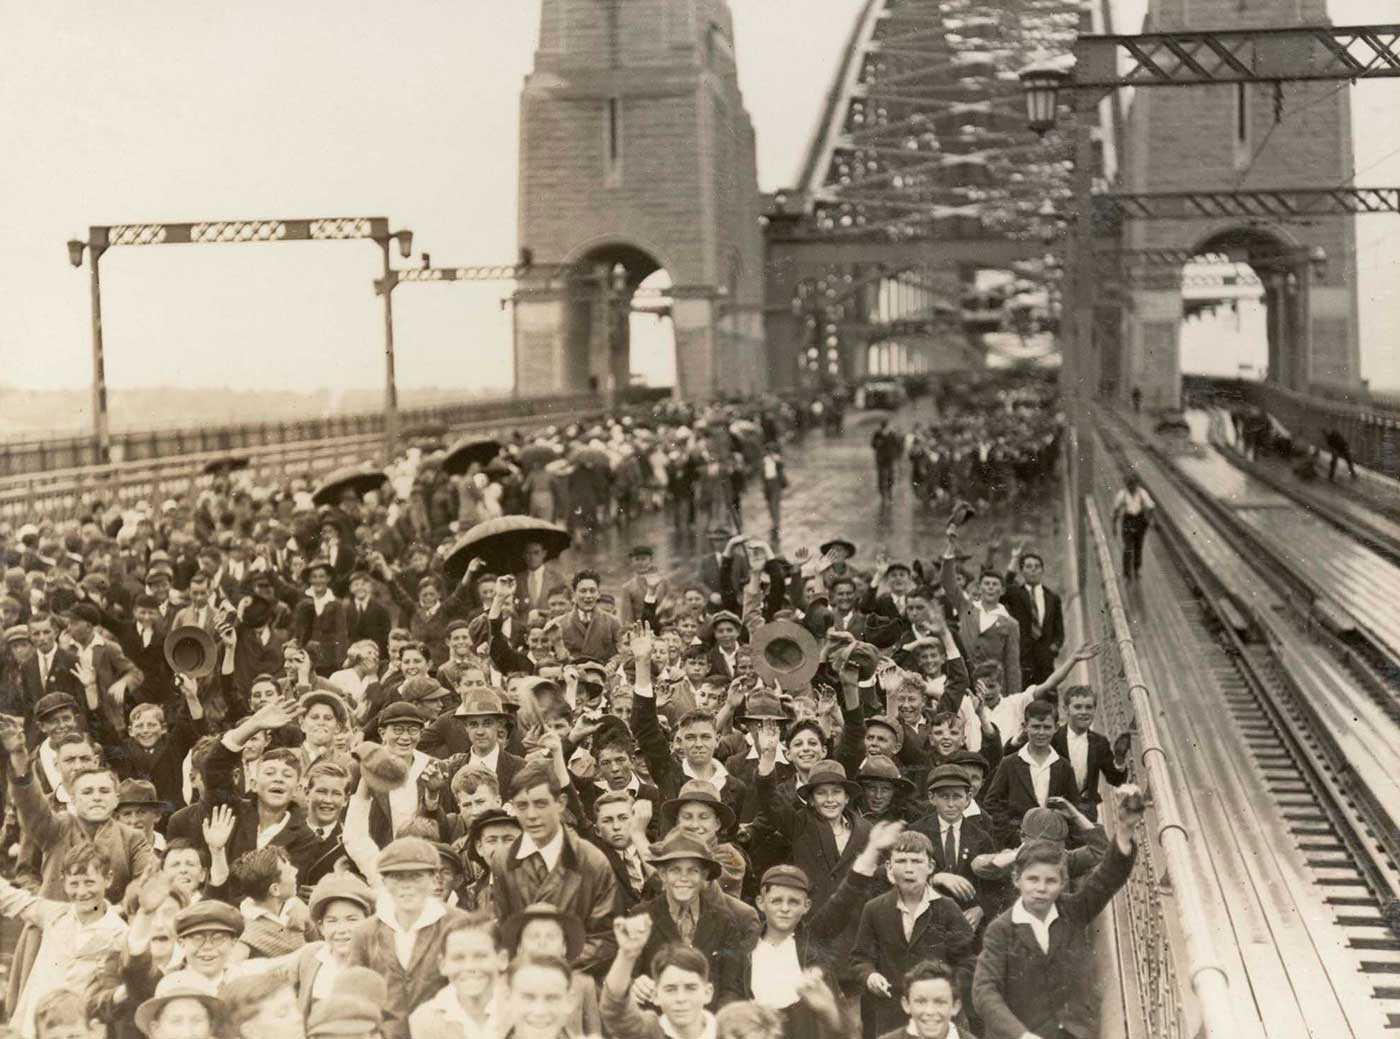 Black and white photo of a large crowd of schoolchildren crossing the Sydney Harbour Bridge. There is no traffic on the bridge. - click to view larger image